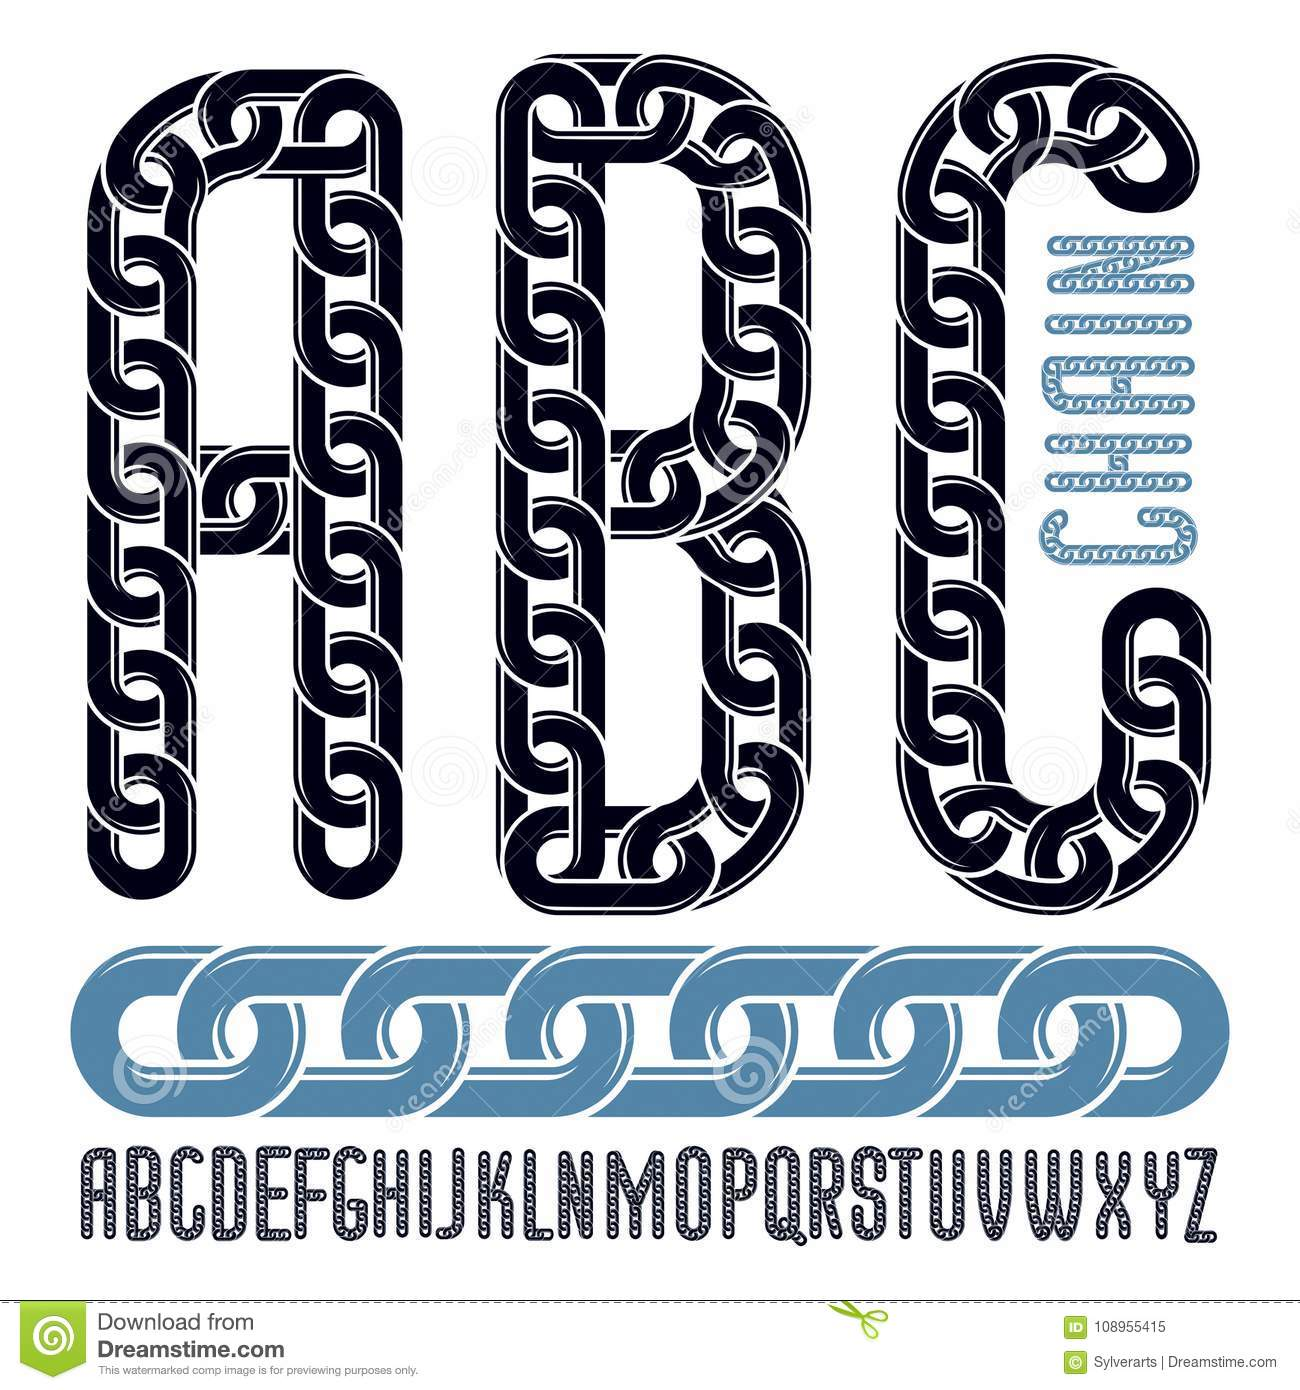 Abc Creation se rapportant à vector font, trendy typescript can be used in poster creation. u